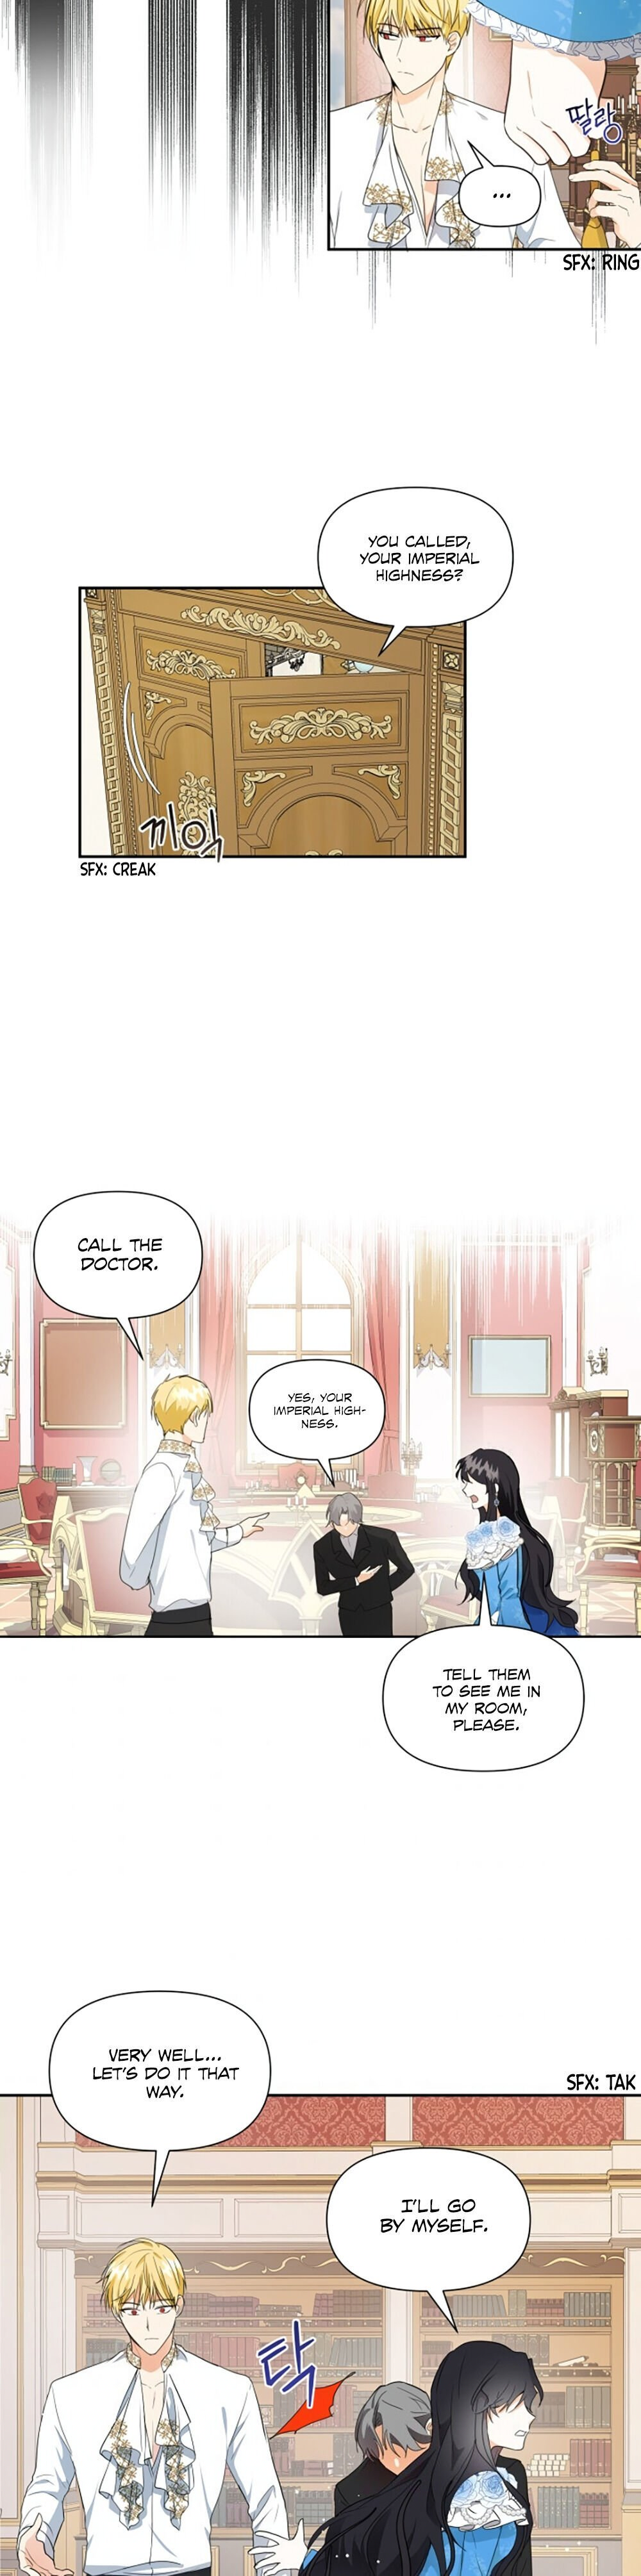 I Became The Wife Of A Tragedy'S Main Lead - chapter 4 - #3